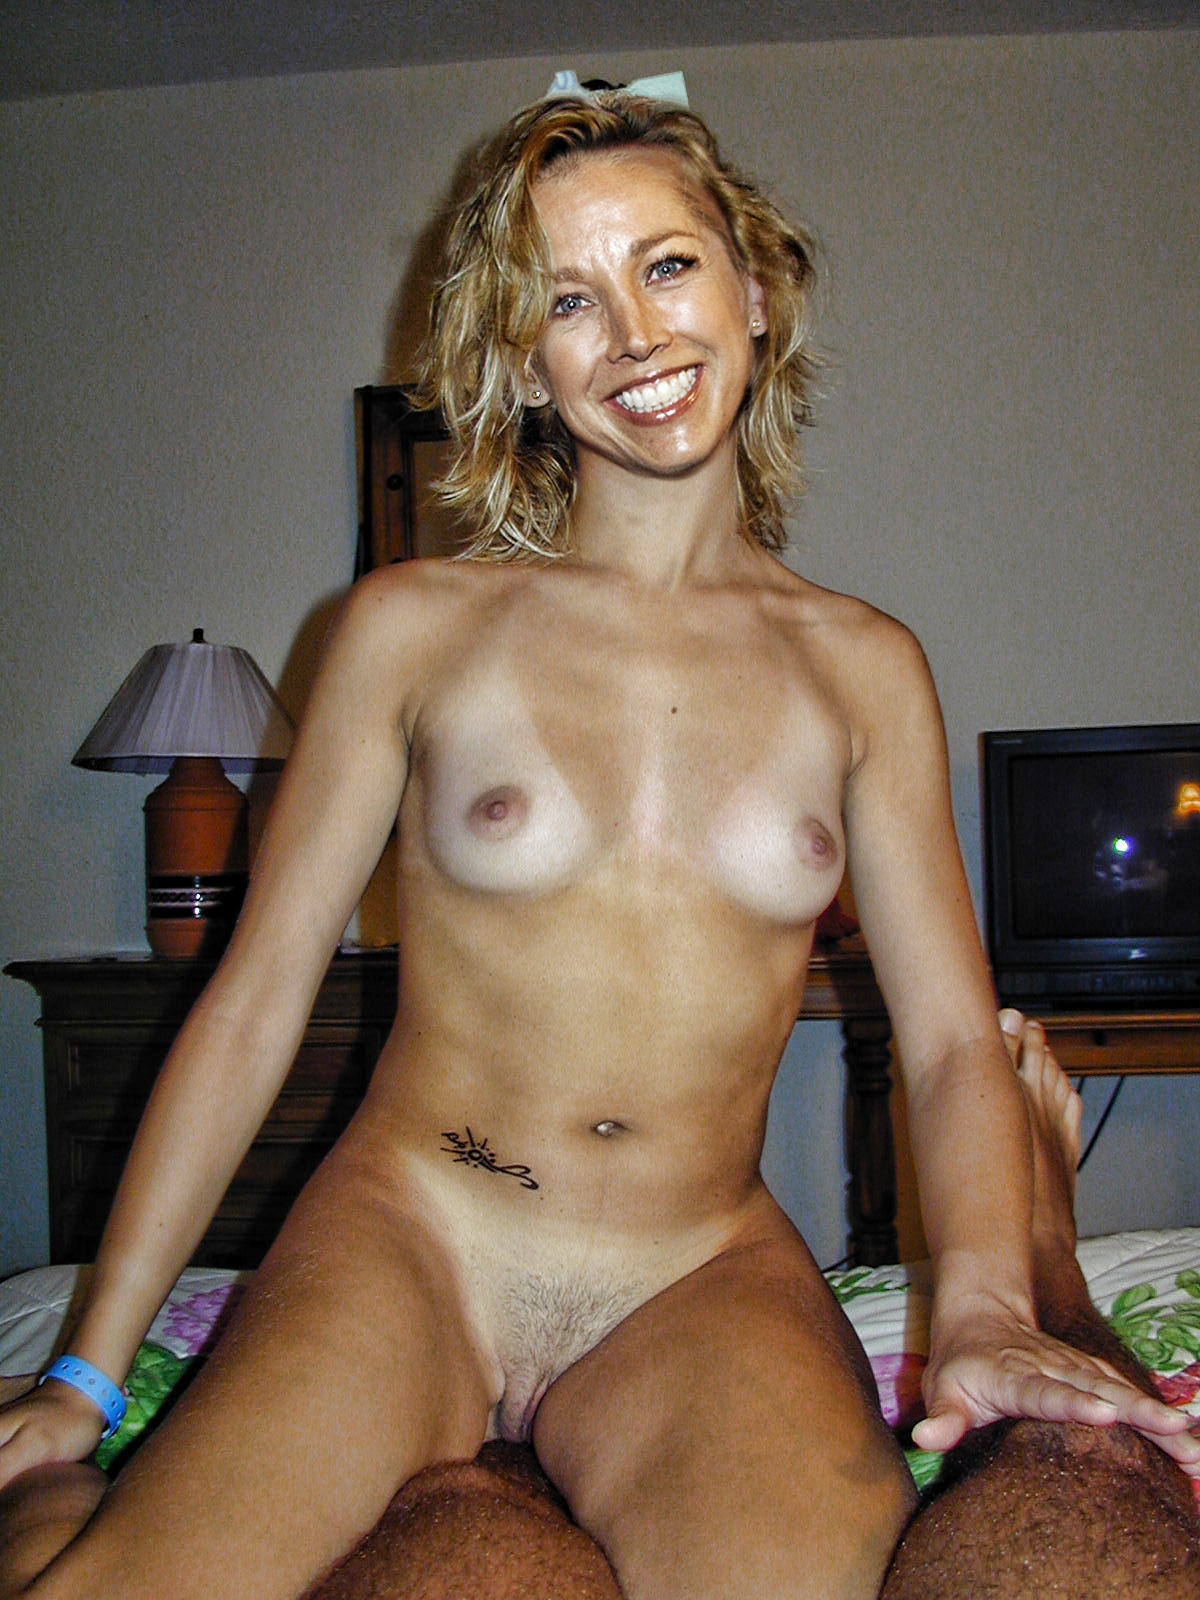 Thank for Denise austin hairy pussy pics me, please